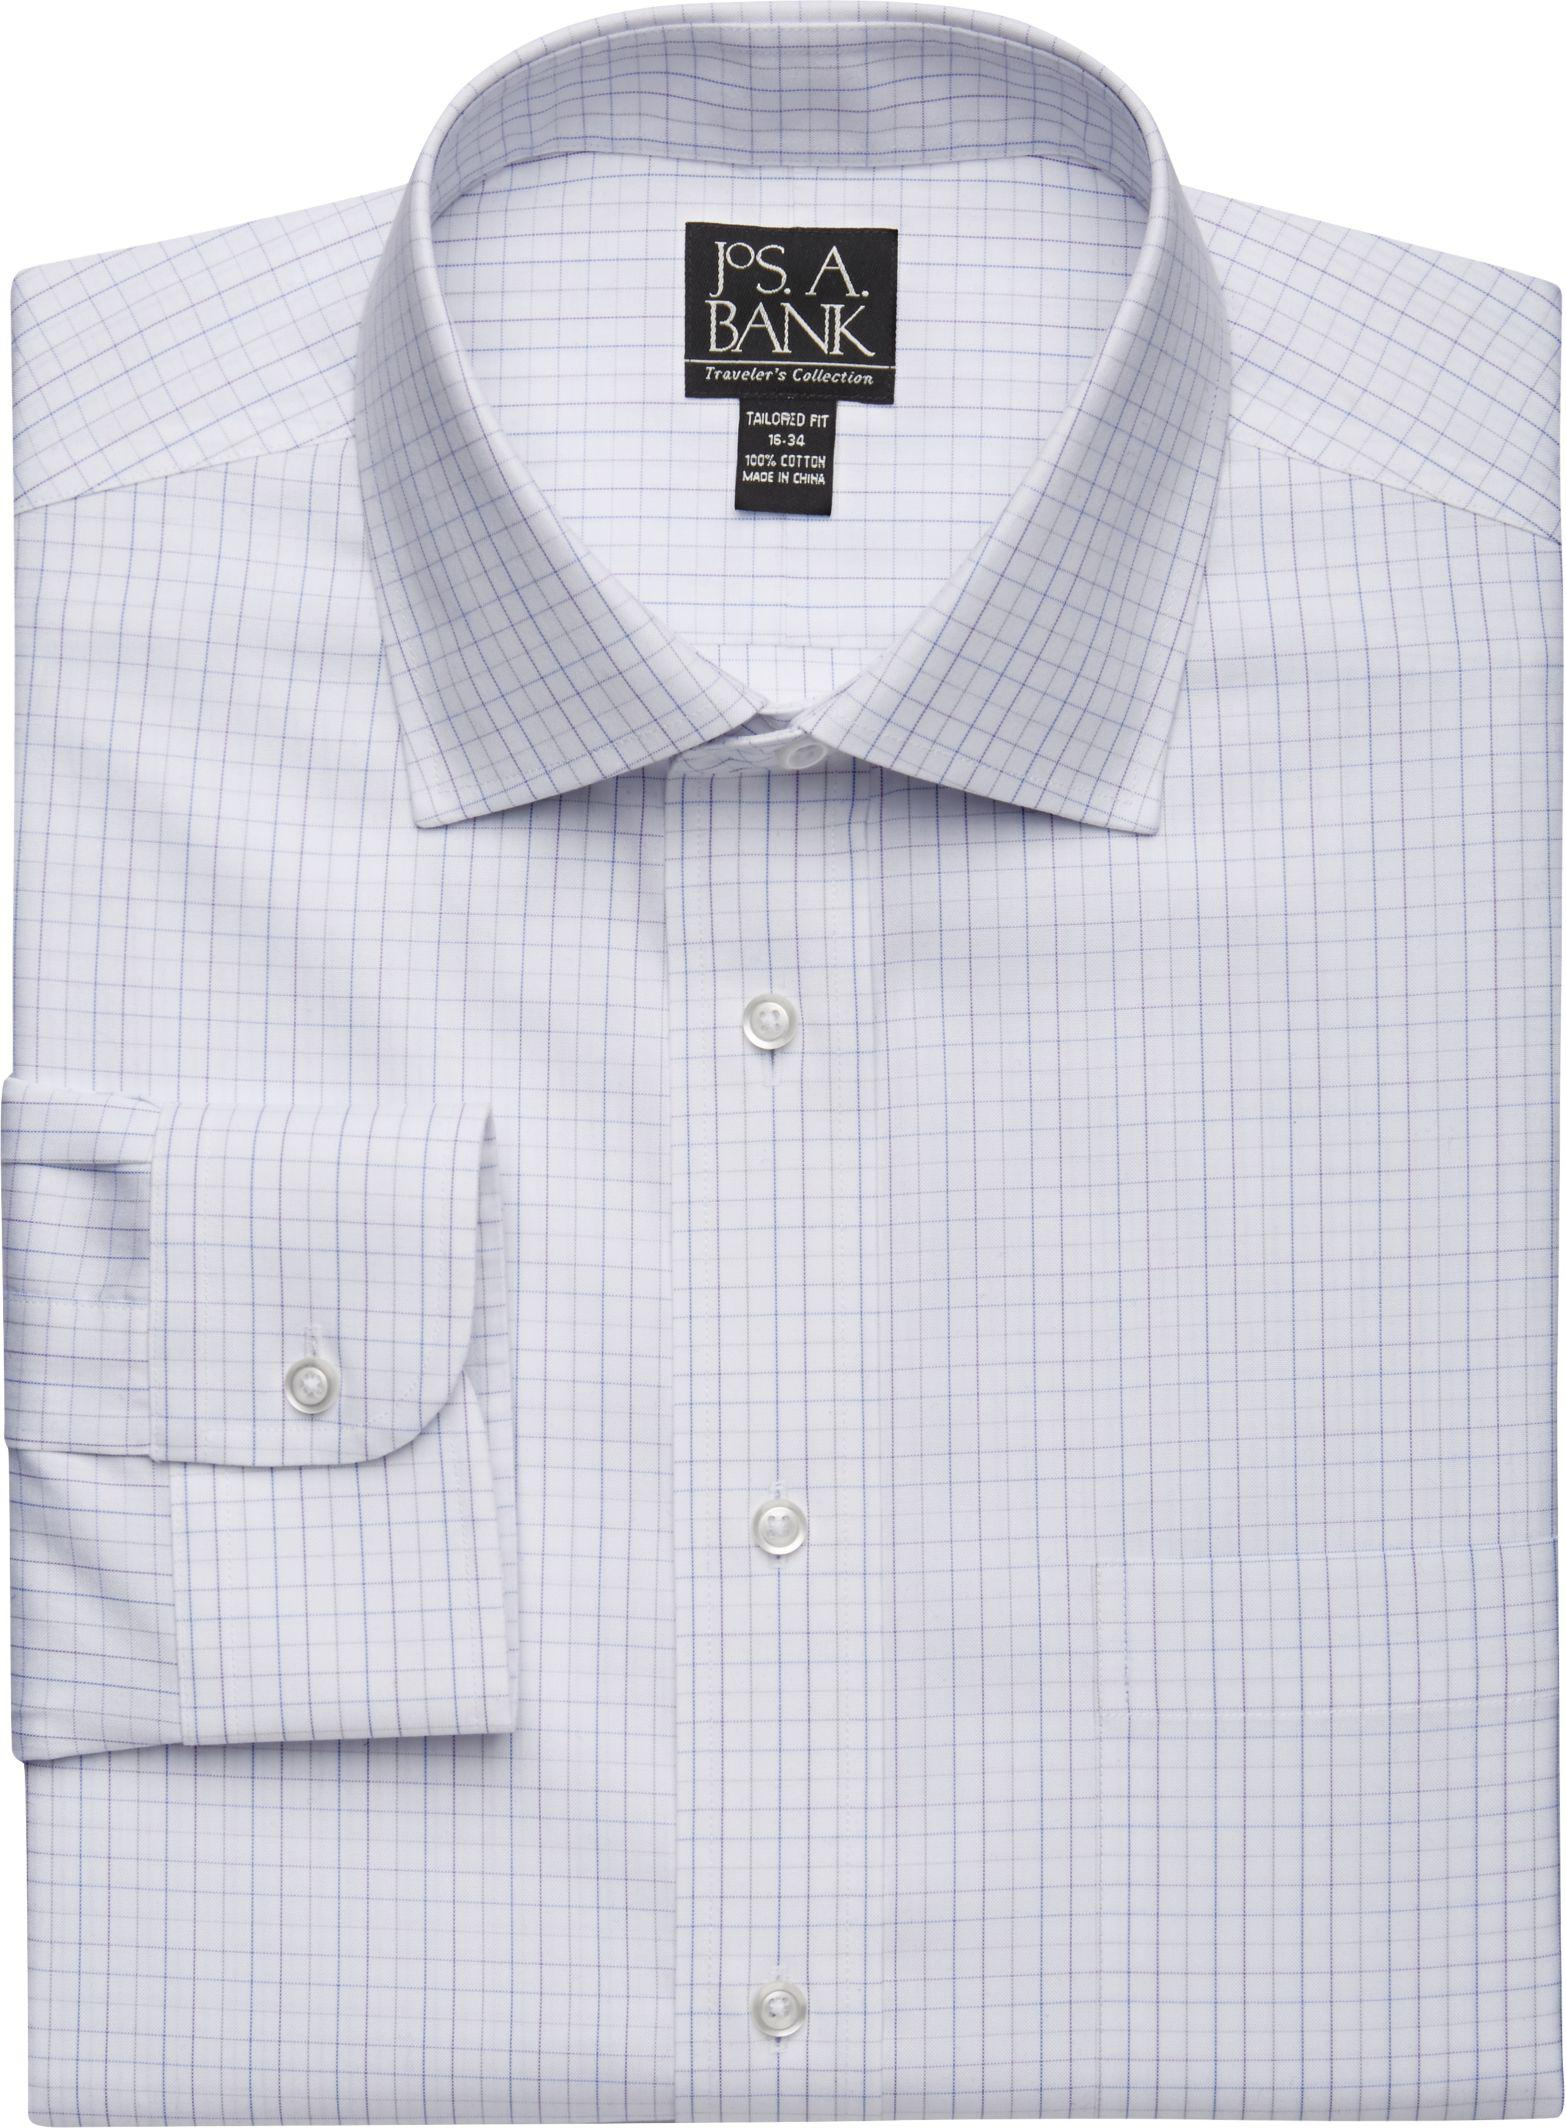 Lyst Jos A Bank Traveler Collection Slim Fit Spread